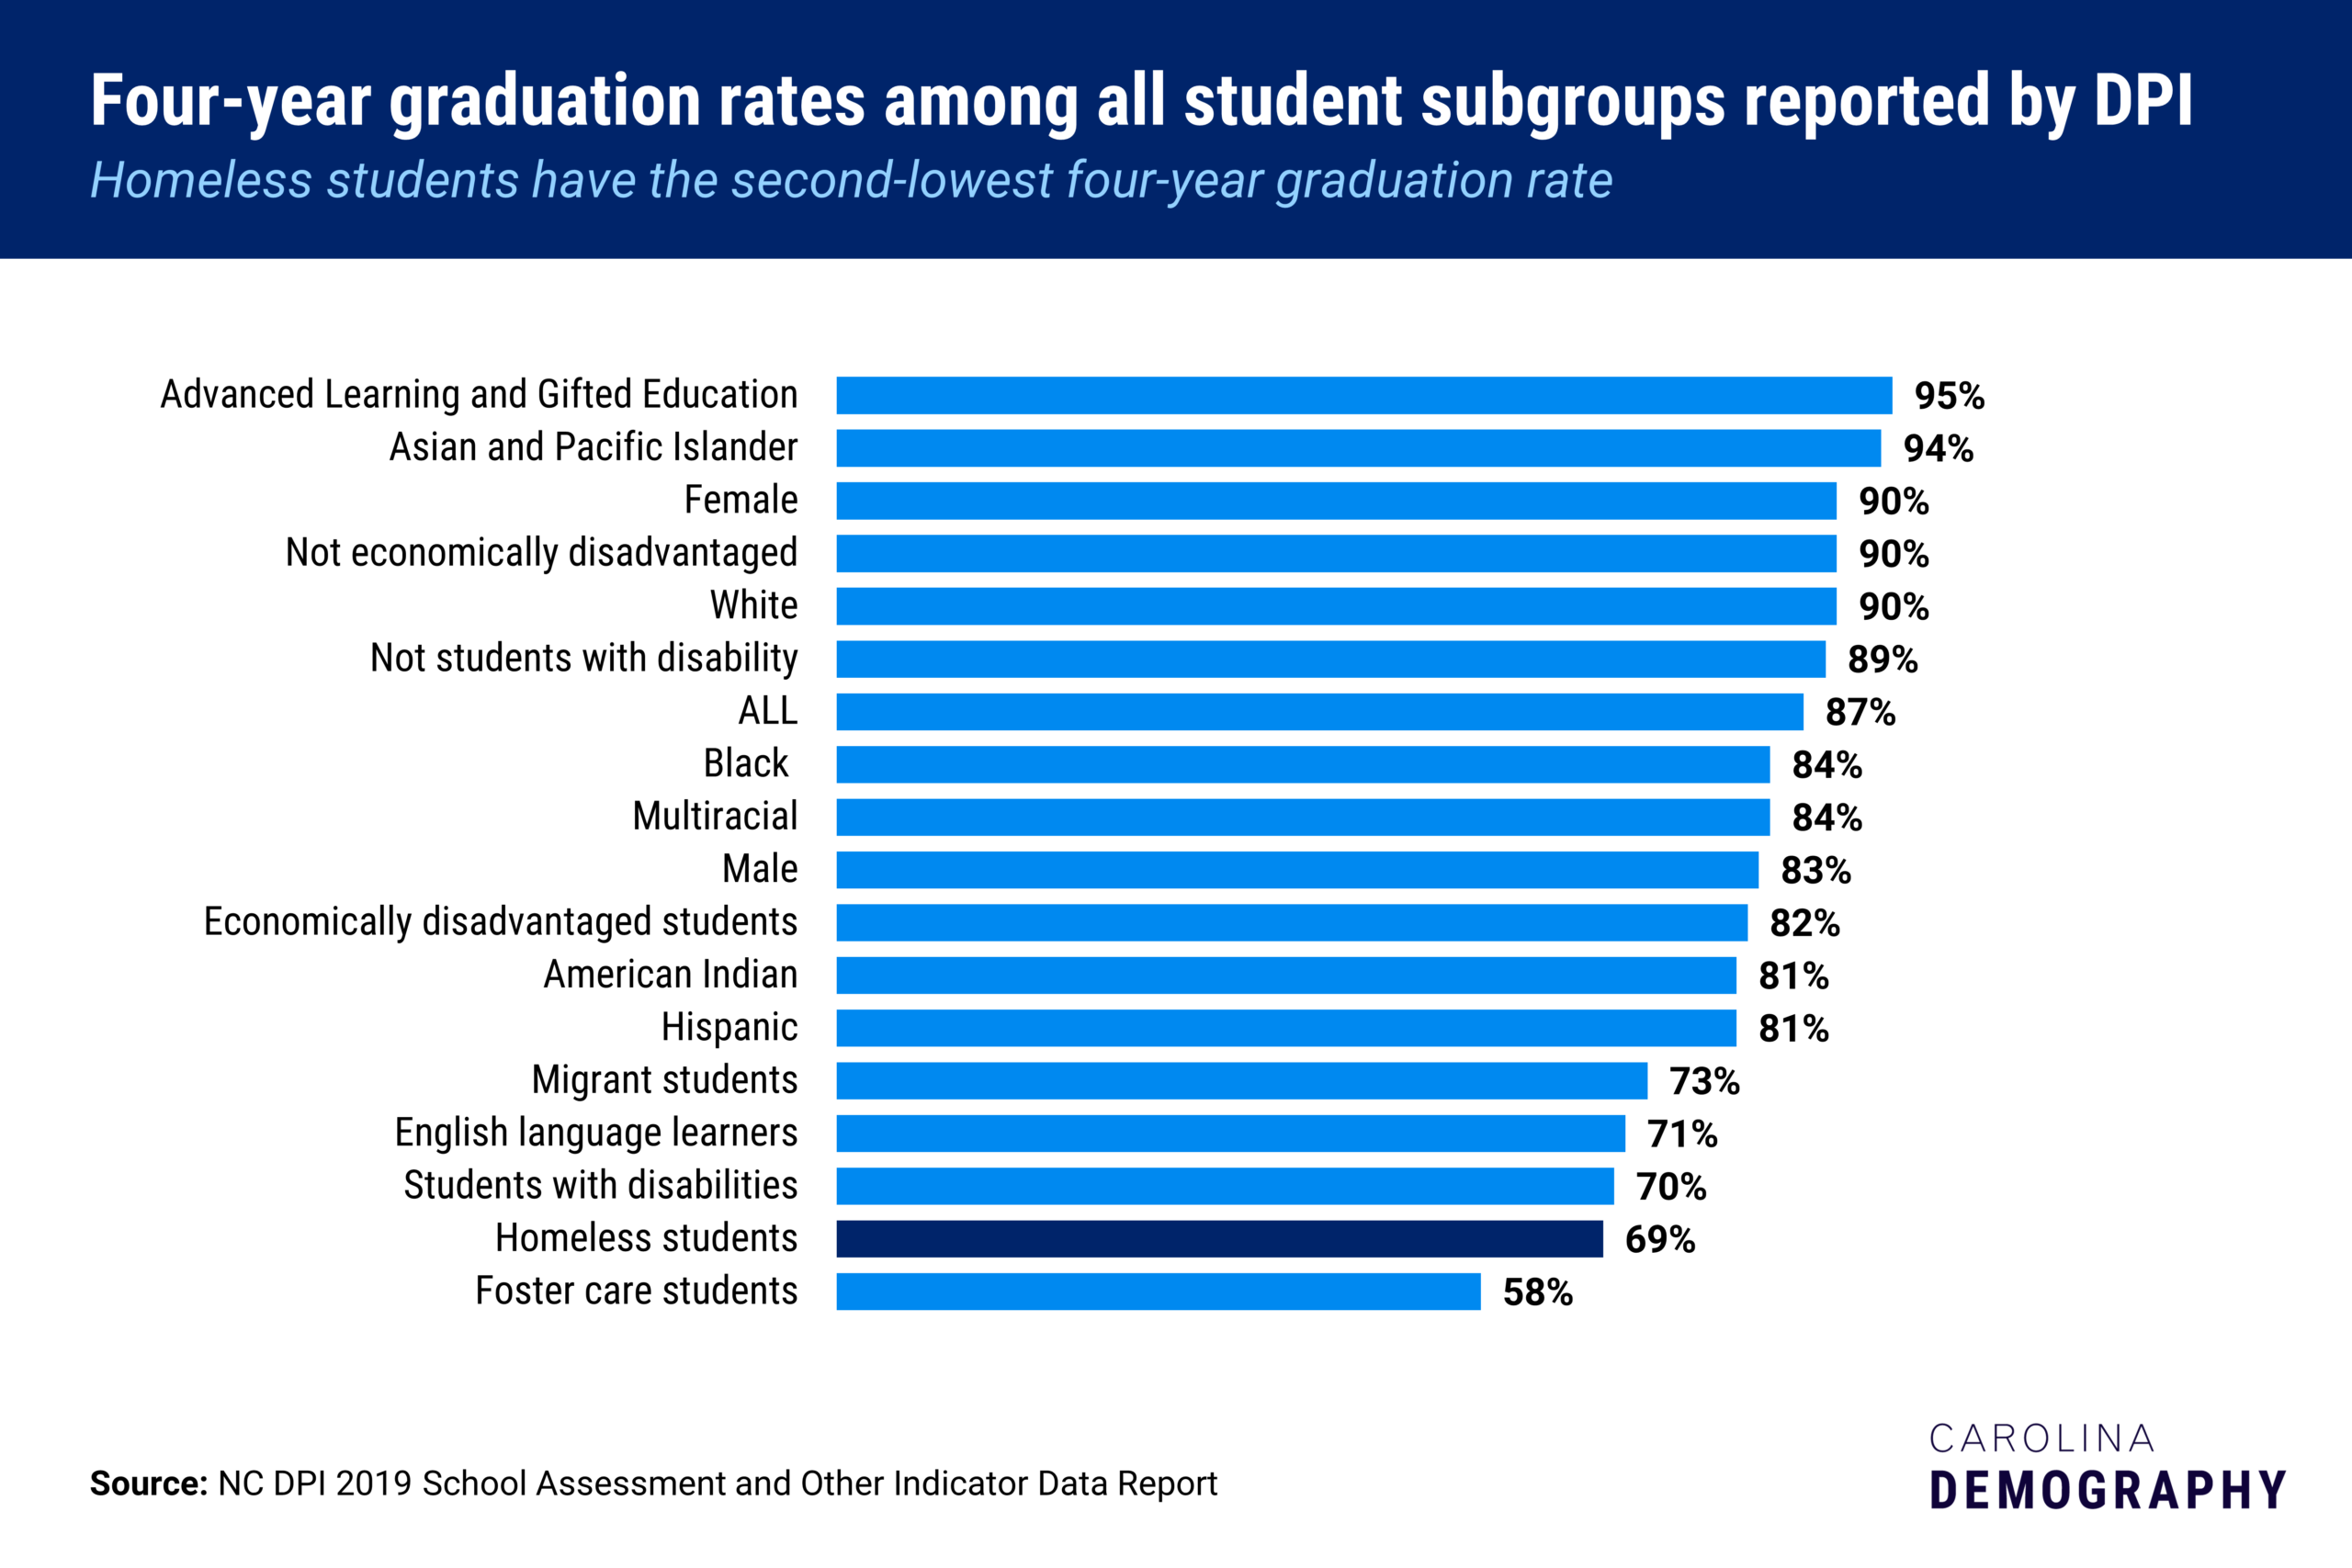 This chart shows the graduation rate of homeless students compared to other student subgroups in NC.